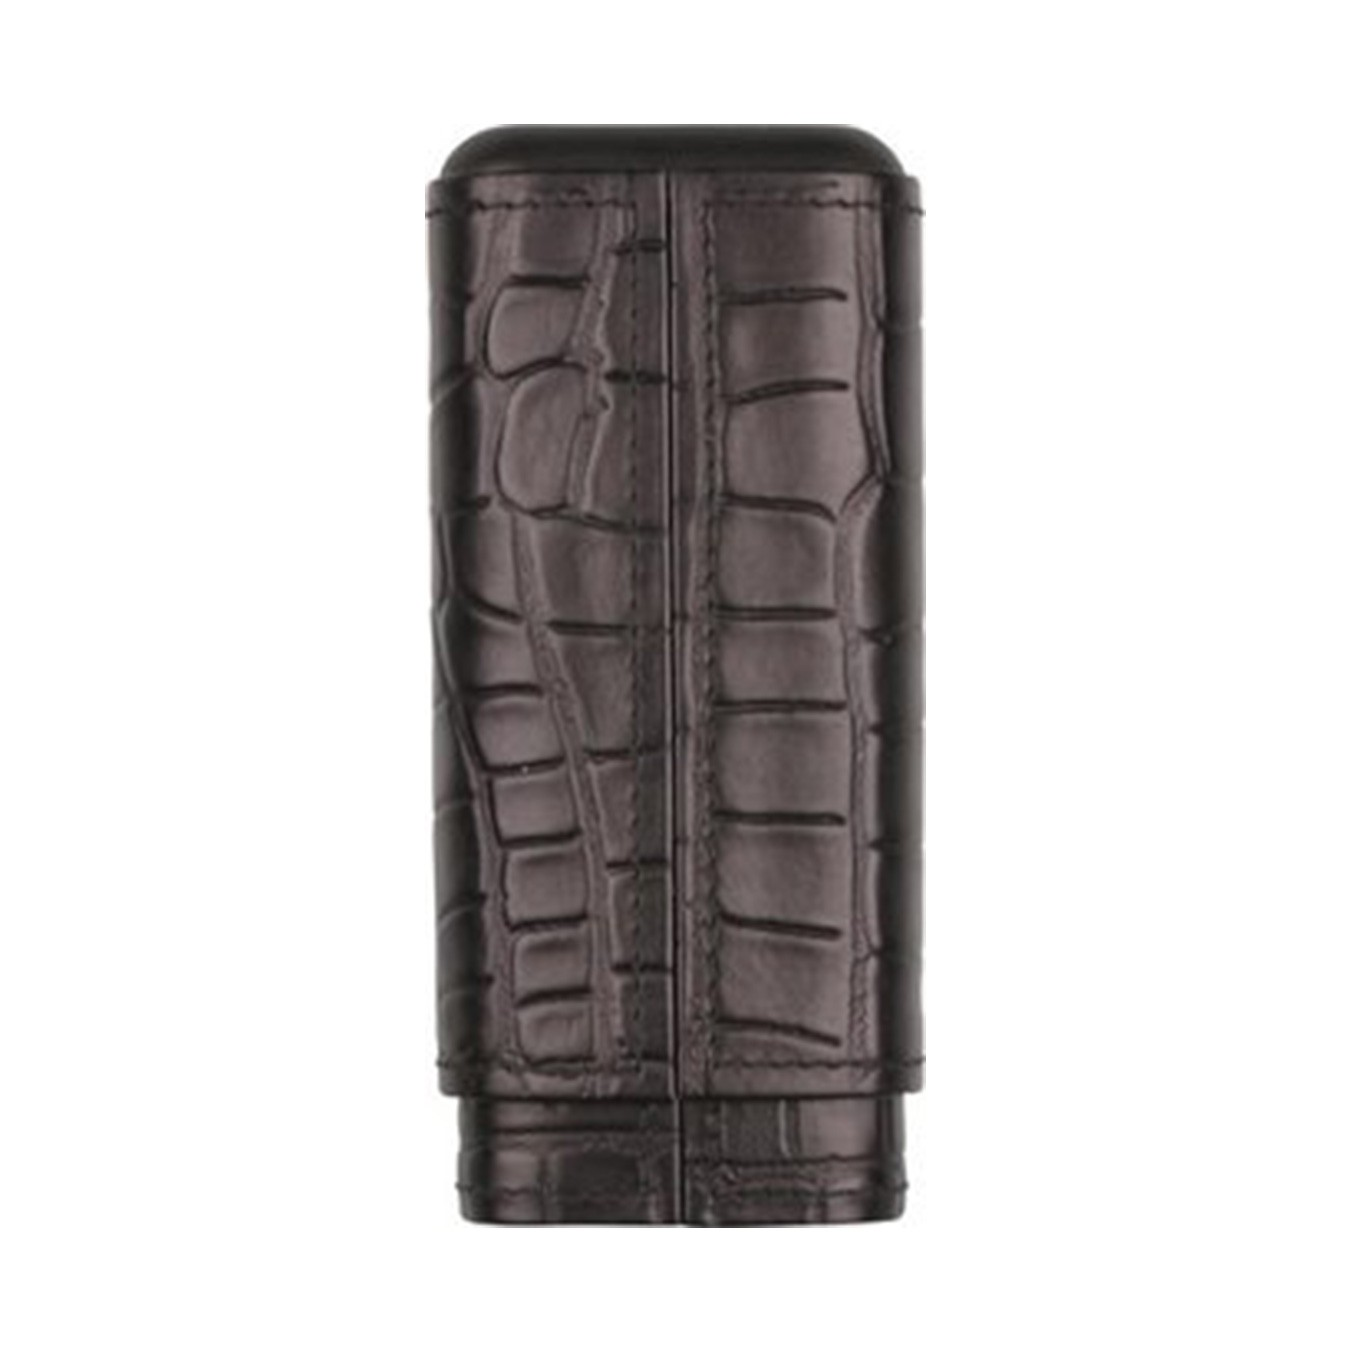 Cigar sliding case leather black, croco design, cedar lining for 3 cigars (Robusto) 16cm length, 2.3cm inside diameter